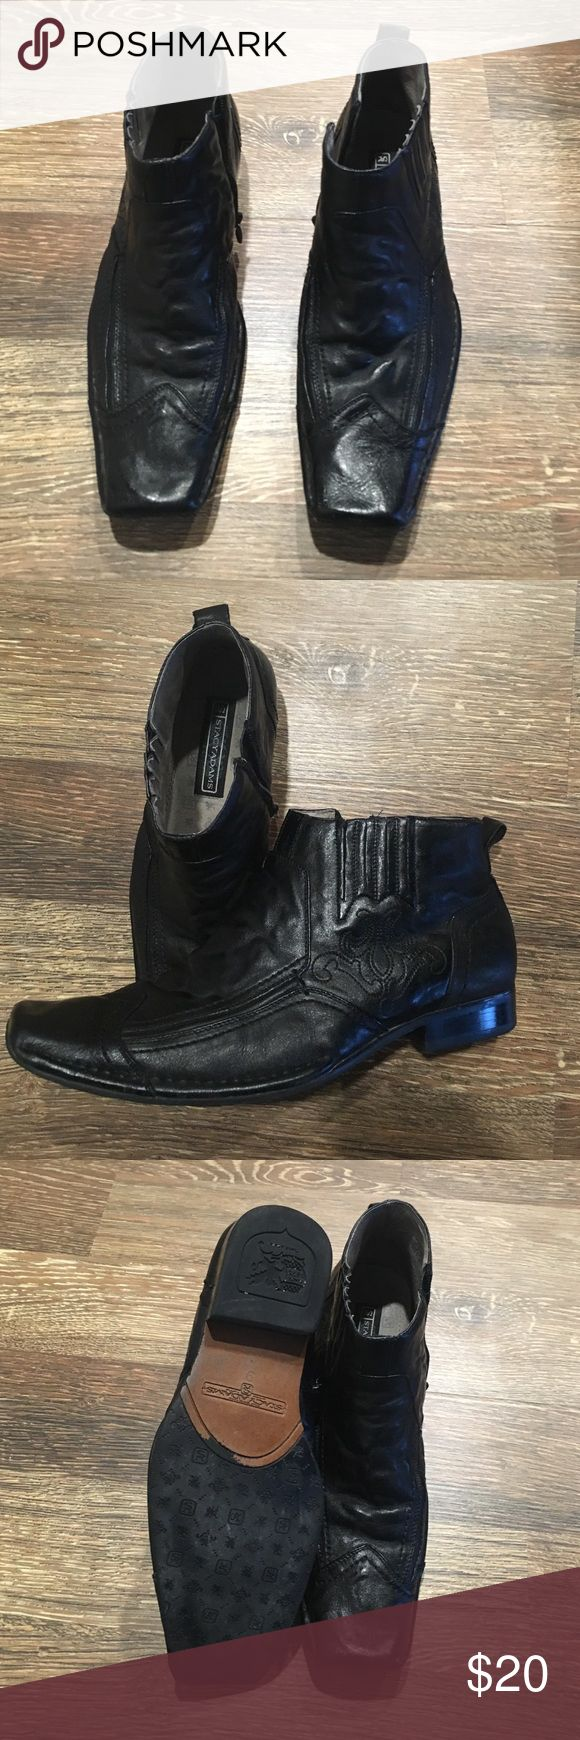 Stacy Adams Side Zip Boots Stacy Adams Side Zip Boots - Leather Upper and Lining - Unique Stitching Design - Good Condition - Shows Some Wear - Black Color Stacy Adams Shoes Chukka Boots